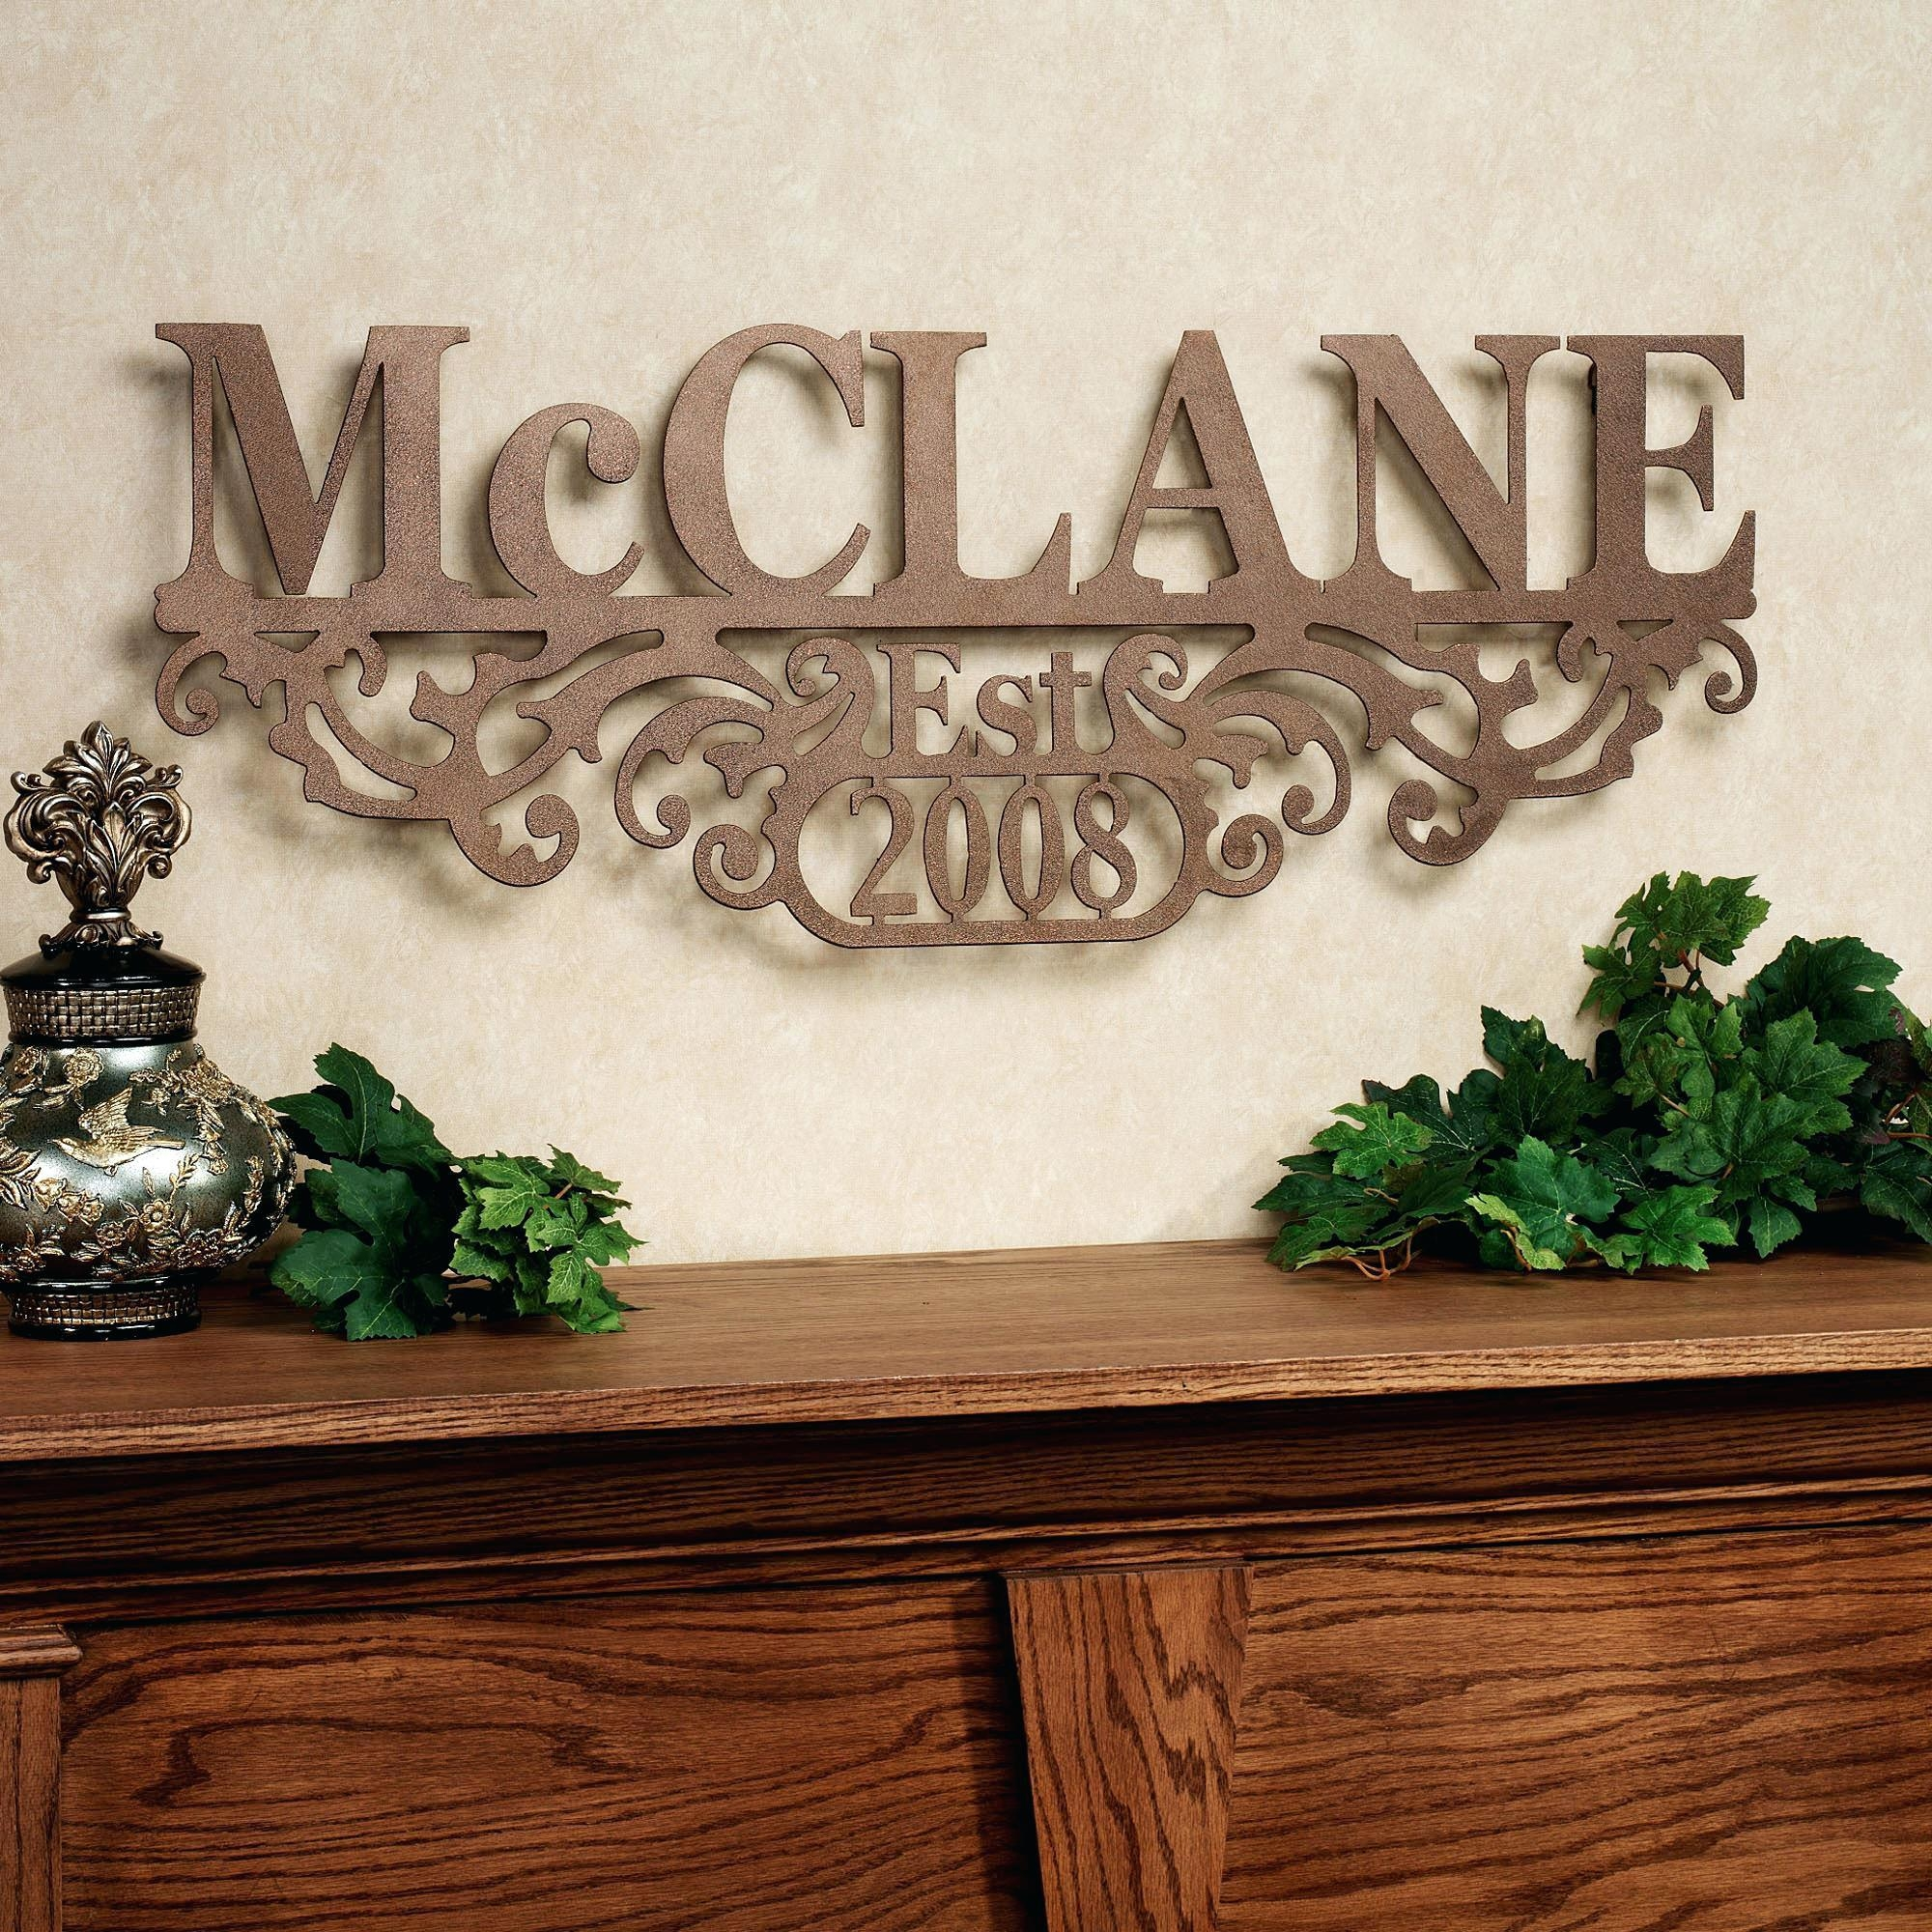 Wall Ideas : Last Name Metal Wall Art Family Metal Wall Art Uk For Faith Family Friends Wall Art (View 4 of 20)